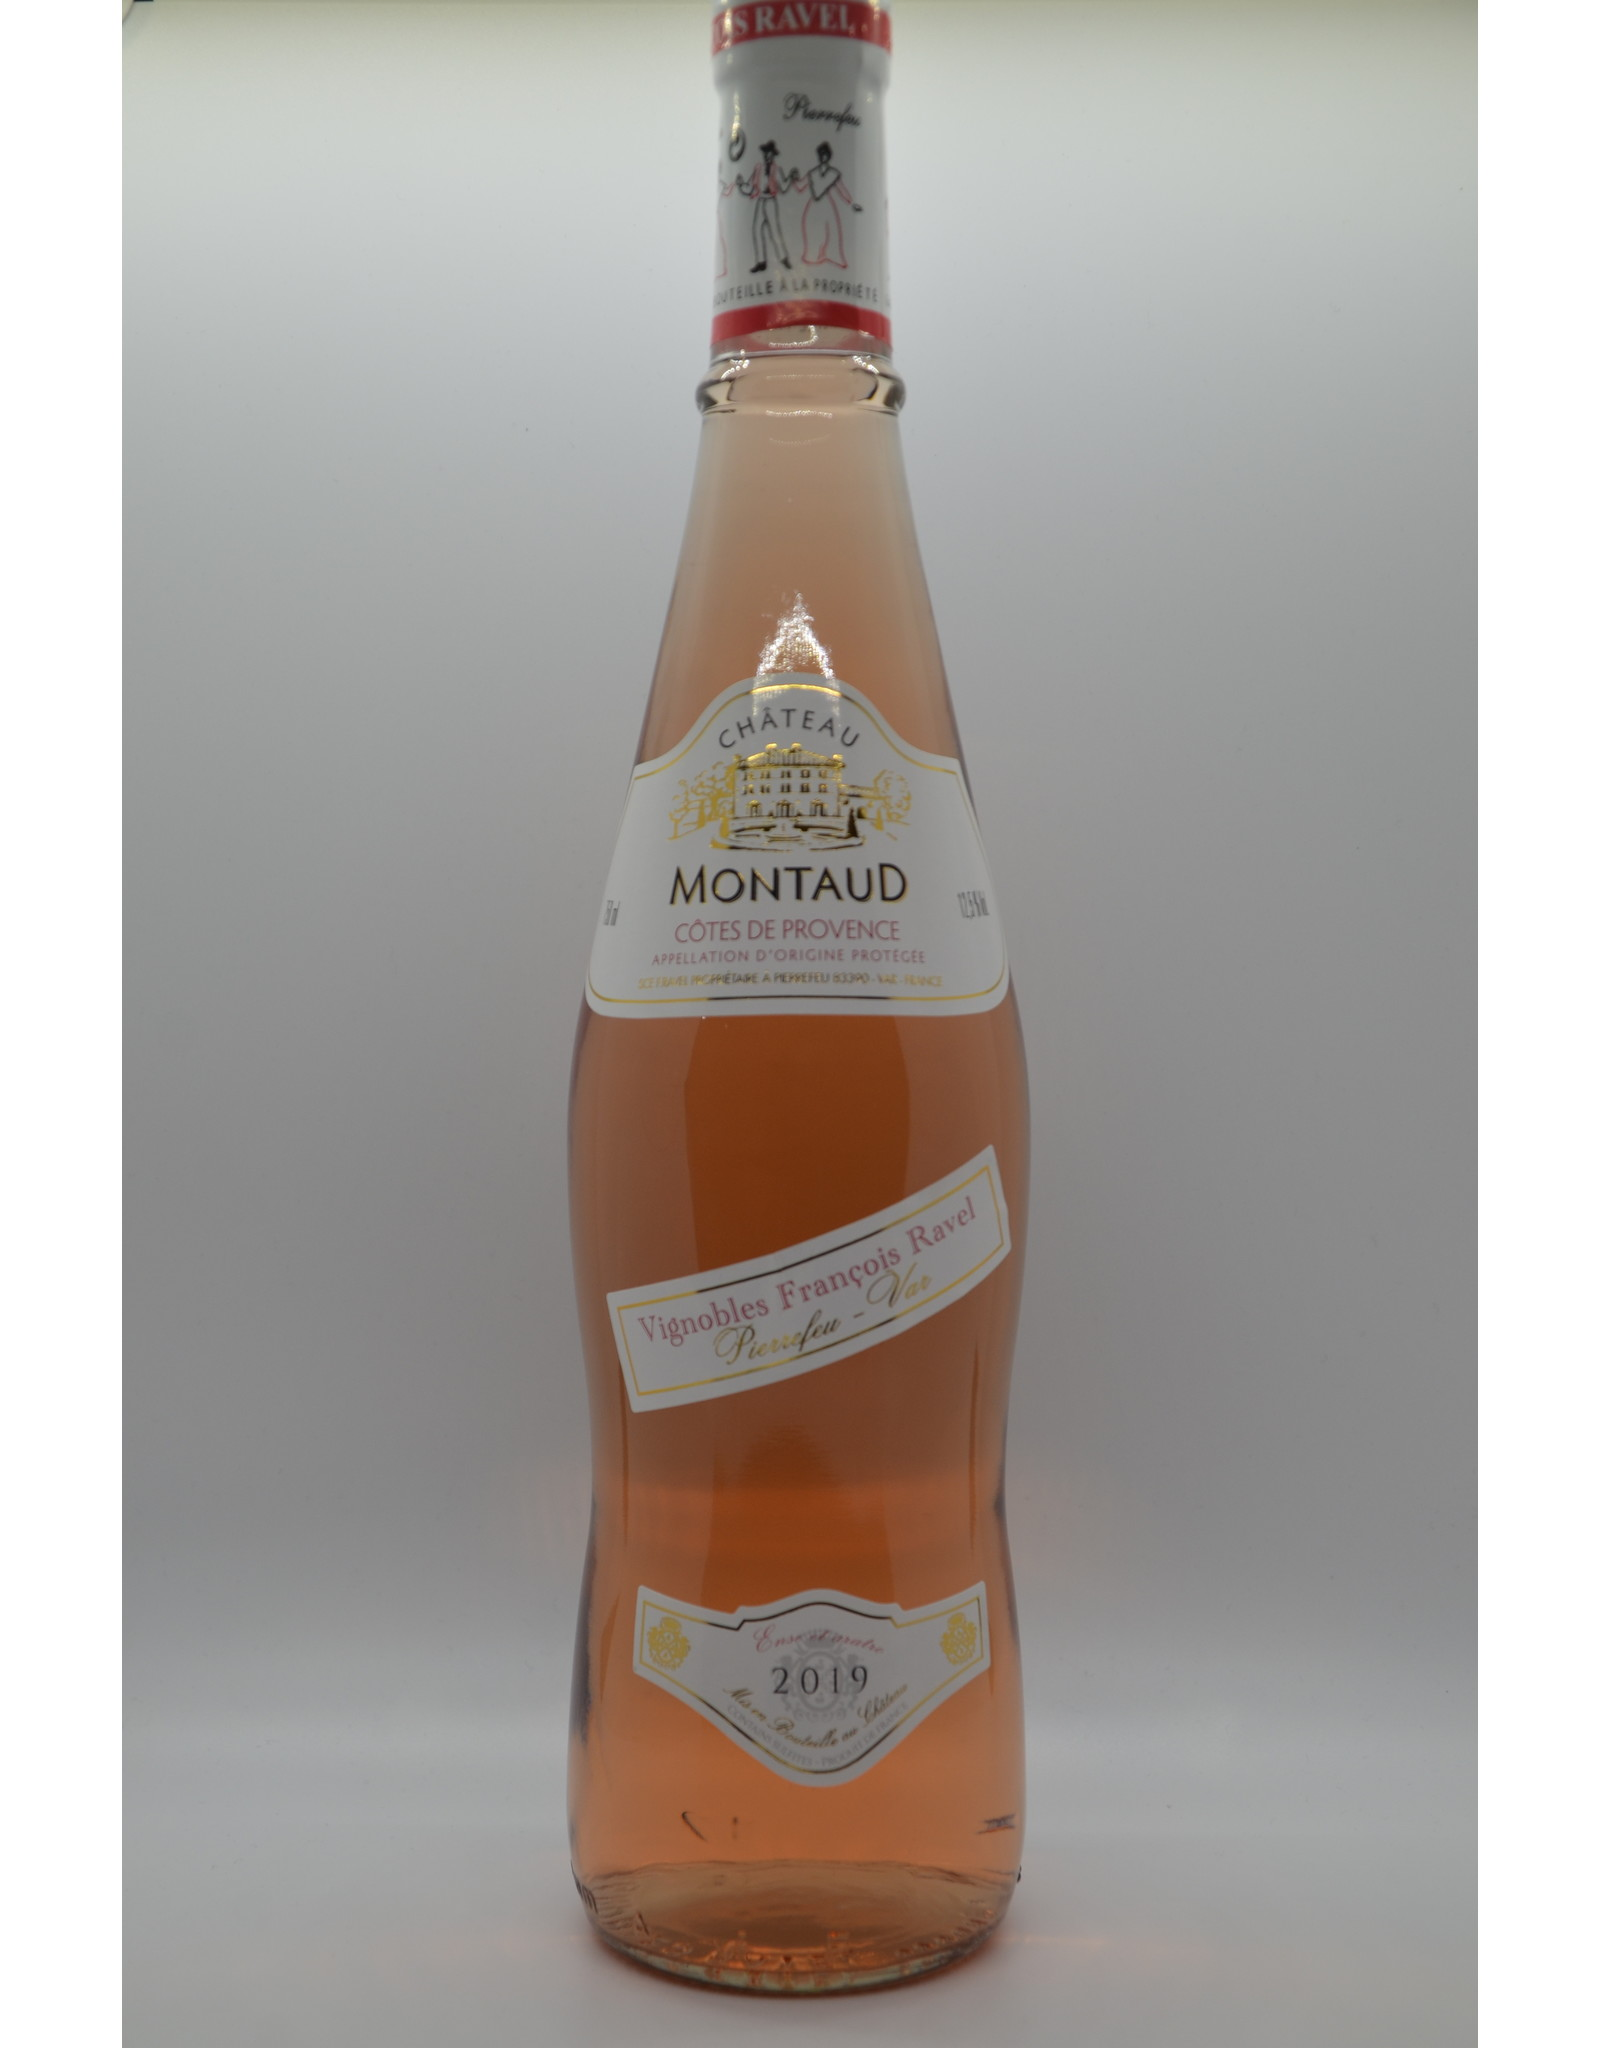 France Chateau Montaud Cotes de Provence Rose